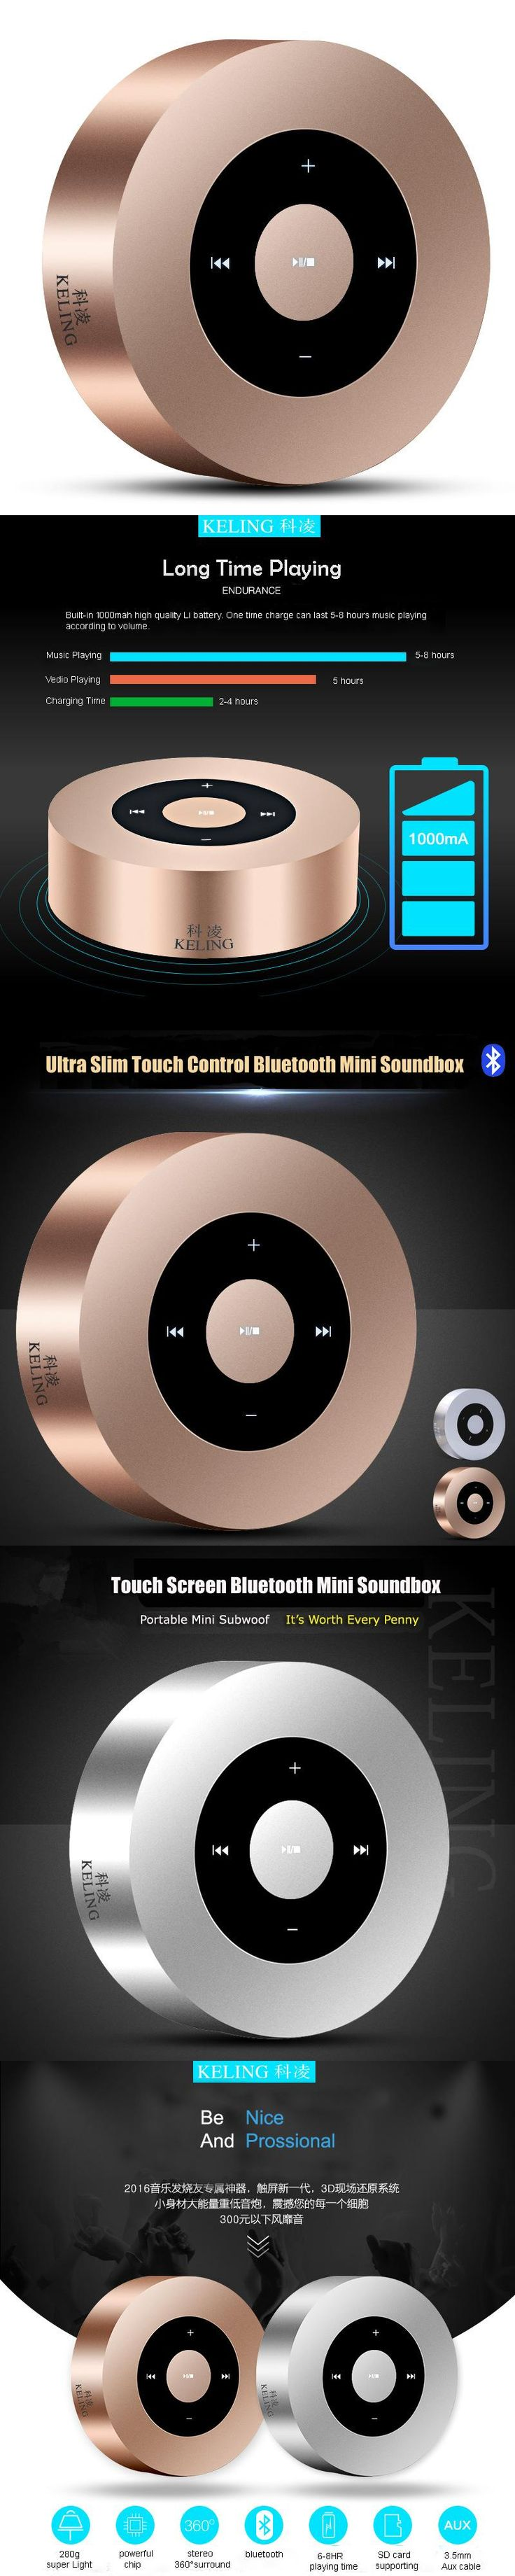 A8 Portable Mini Bluetooth Wireless Speaker MP3 Player Support Hands Free Call Micro SD Card With Metal Case Passive Radiator